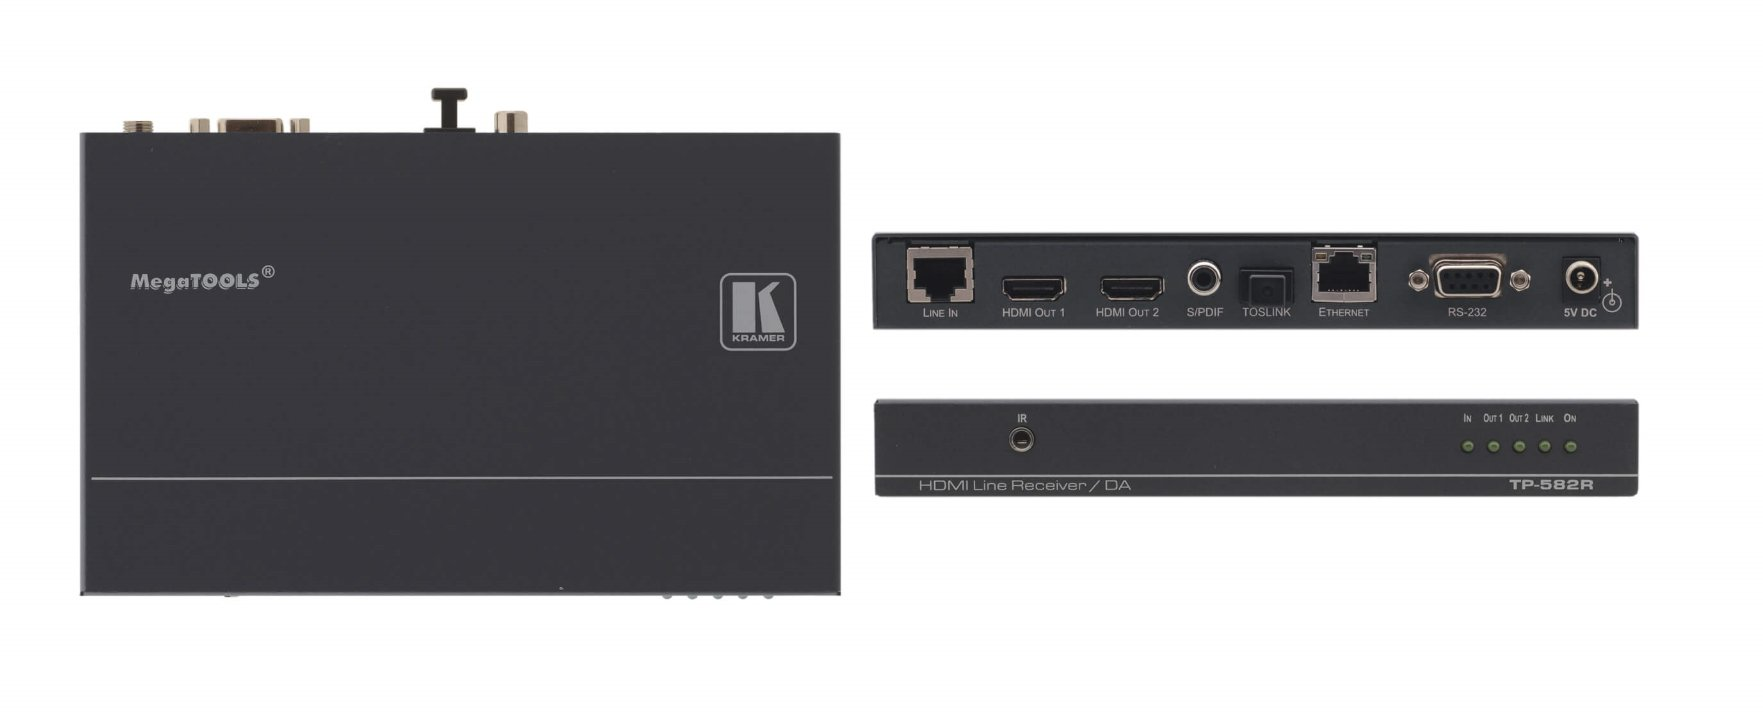 1:2 HDMI Plus Bidirectional RS-232, Ethernet & IR over Twisted Pair Receiver